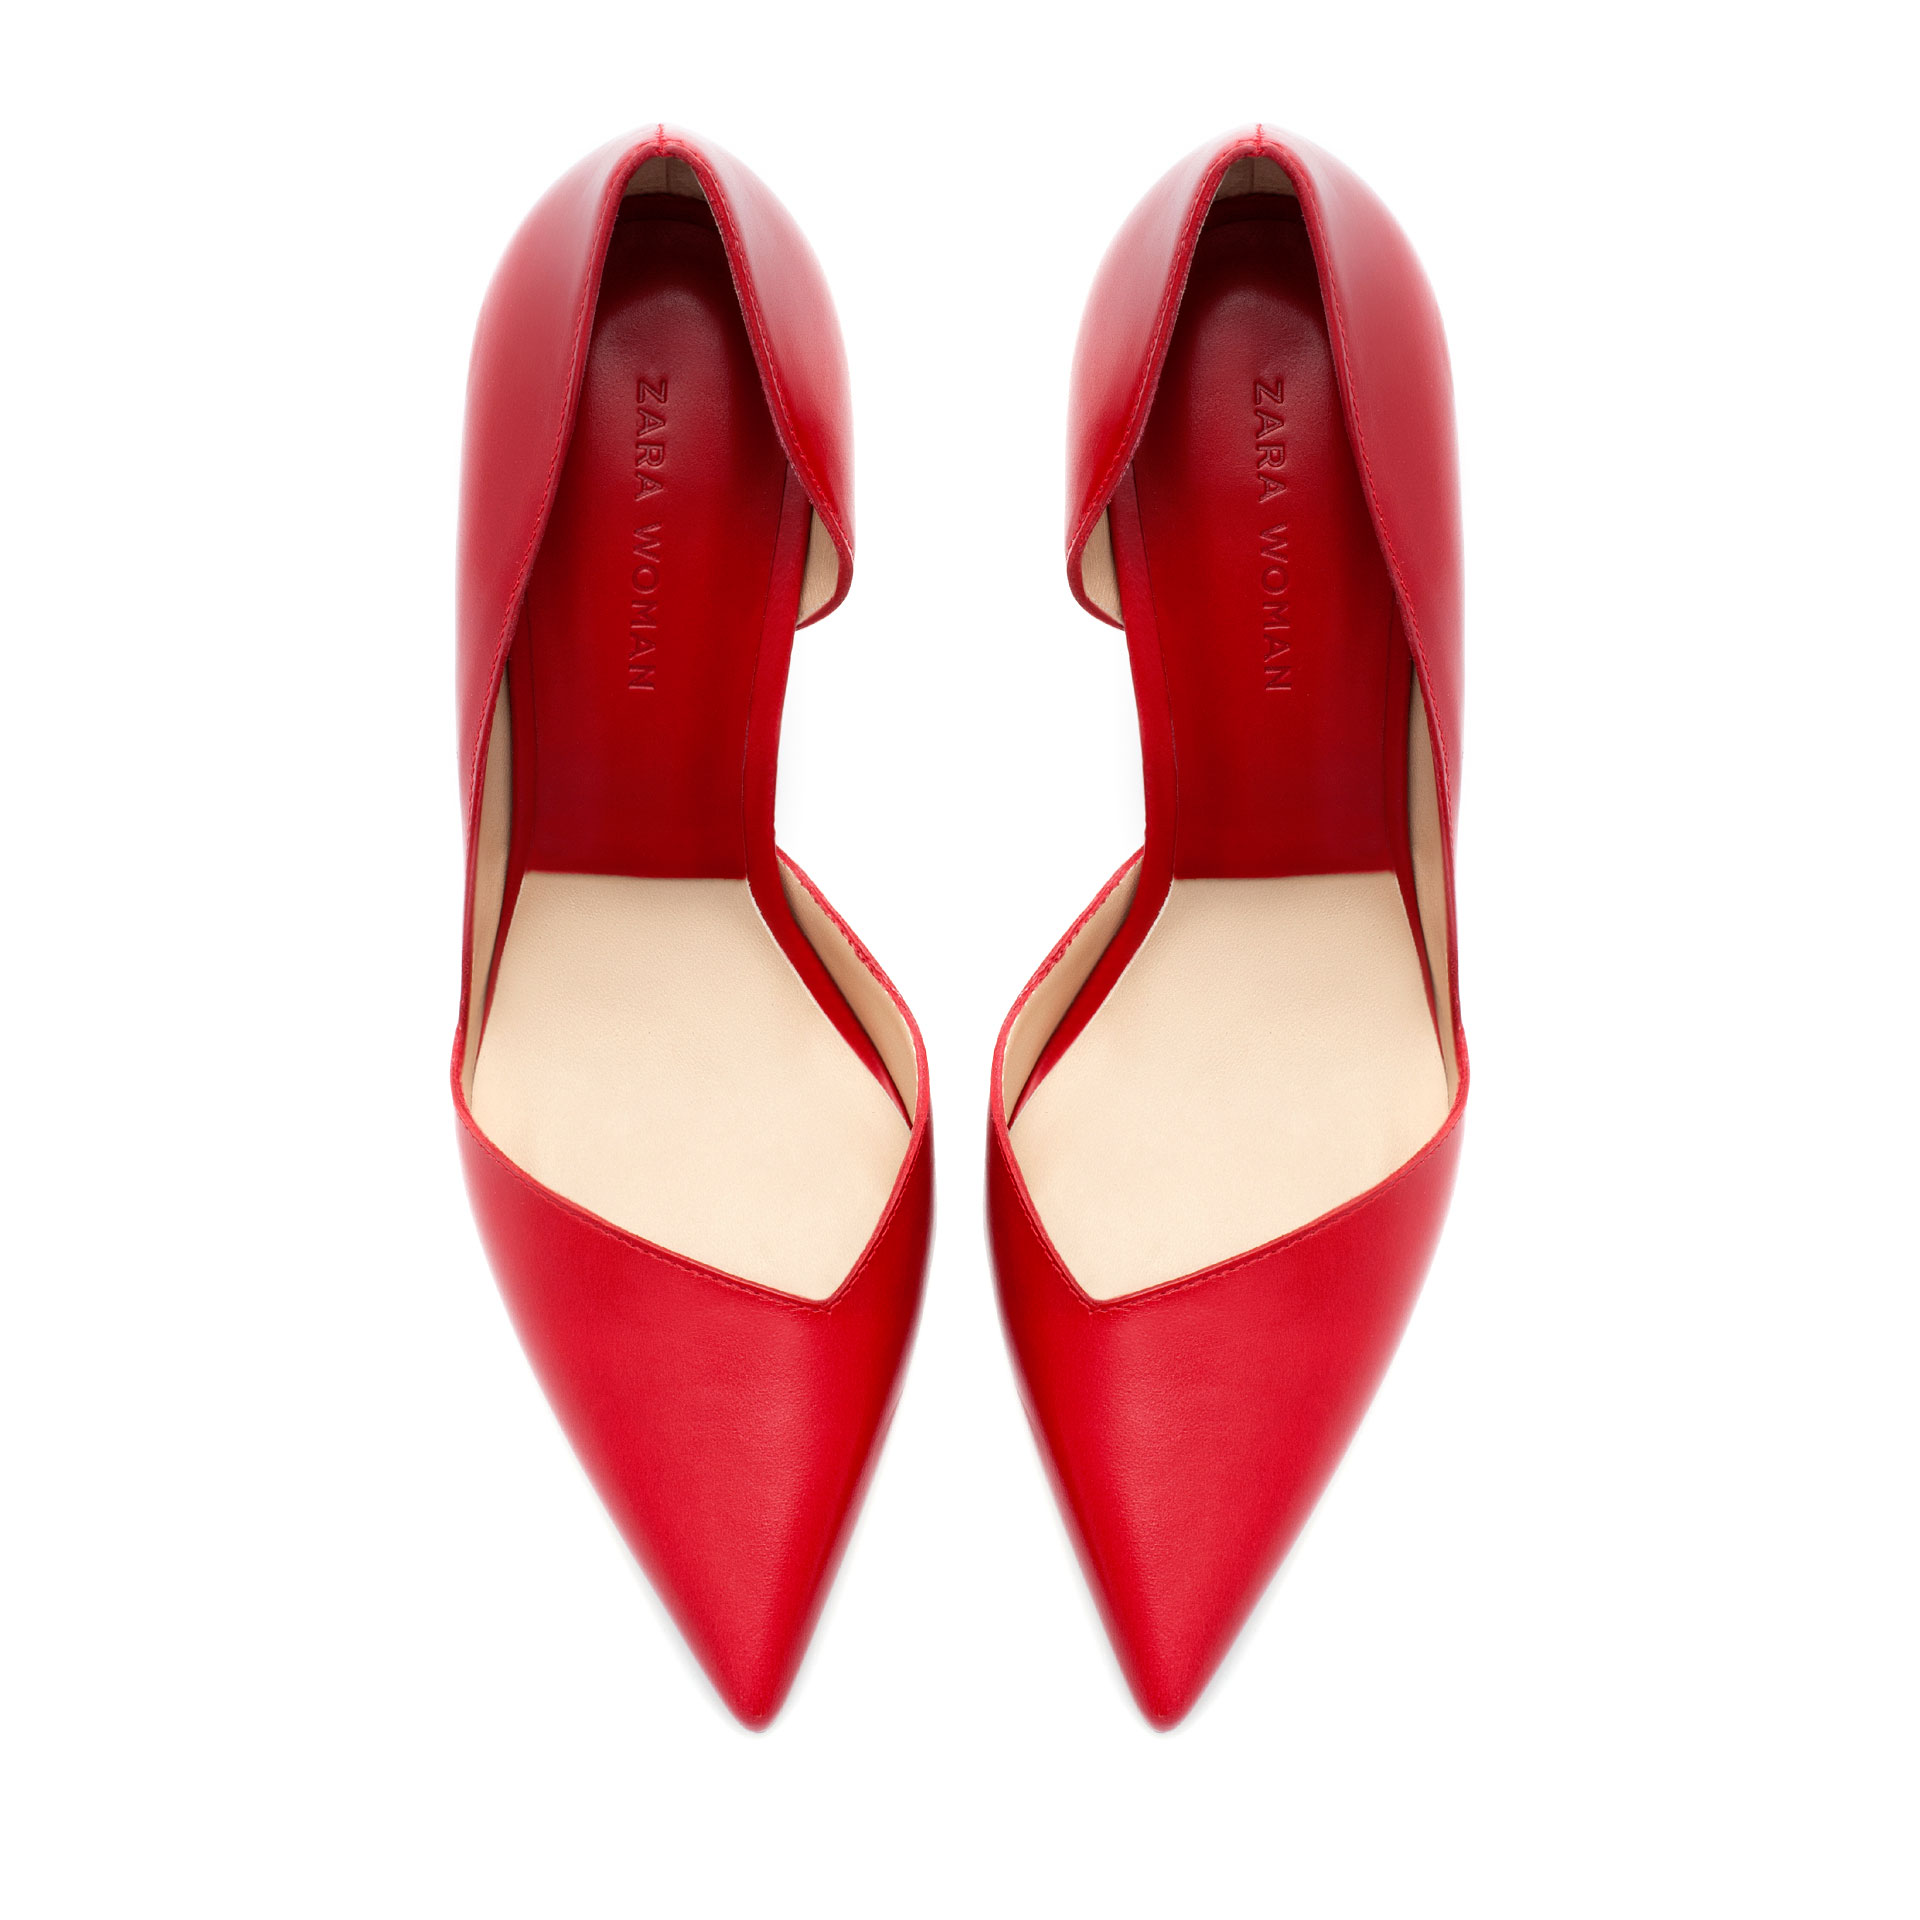 4bdfdf4964f High Heel Shoes  Zara Red High Heel Shoes